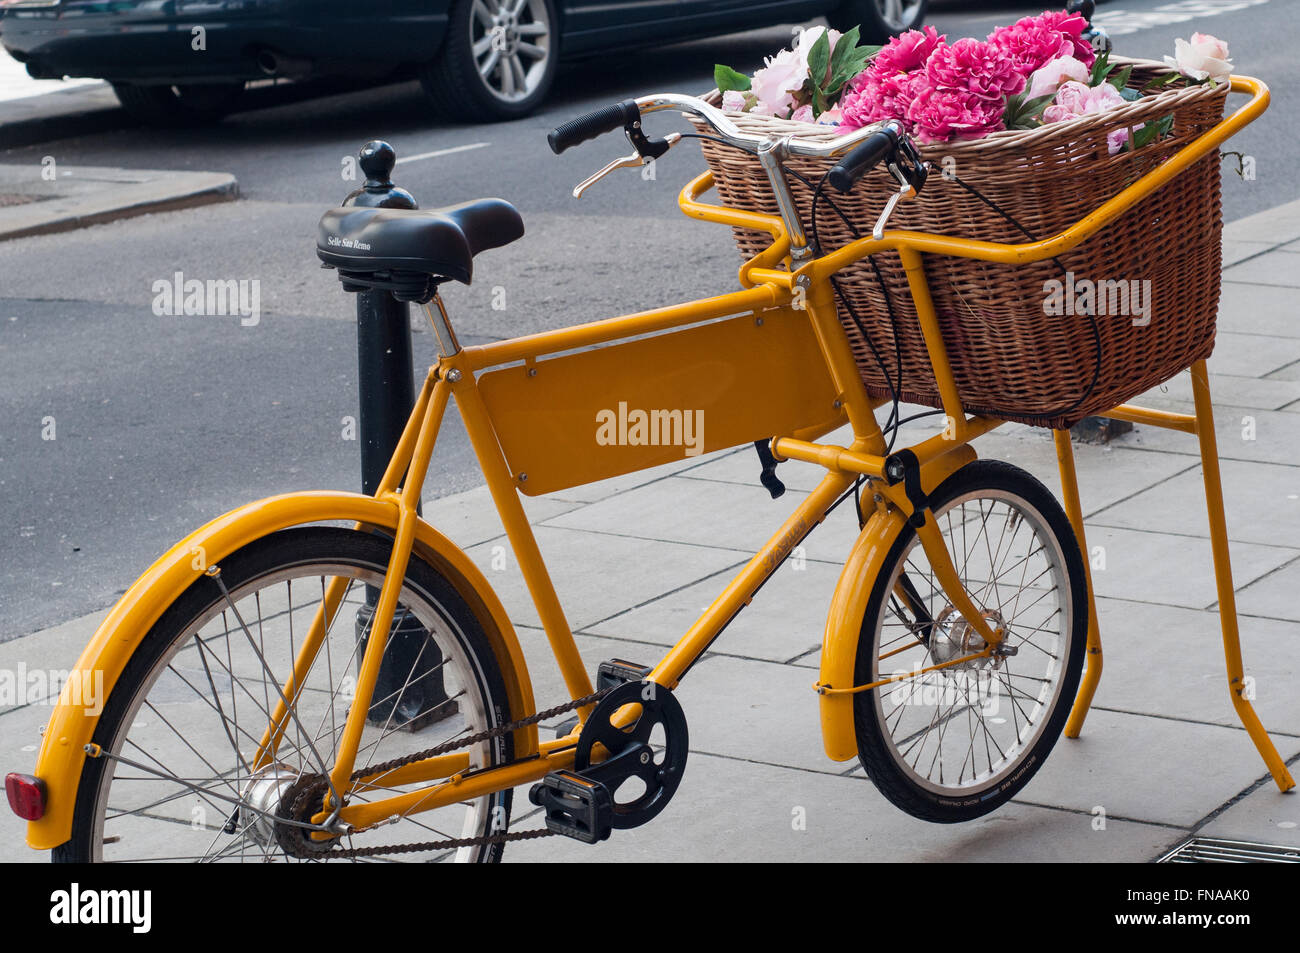 Decorative Yellow Vintage Bike Florist Display With Wicker Basket